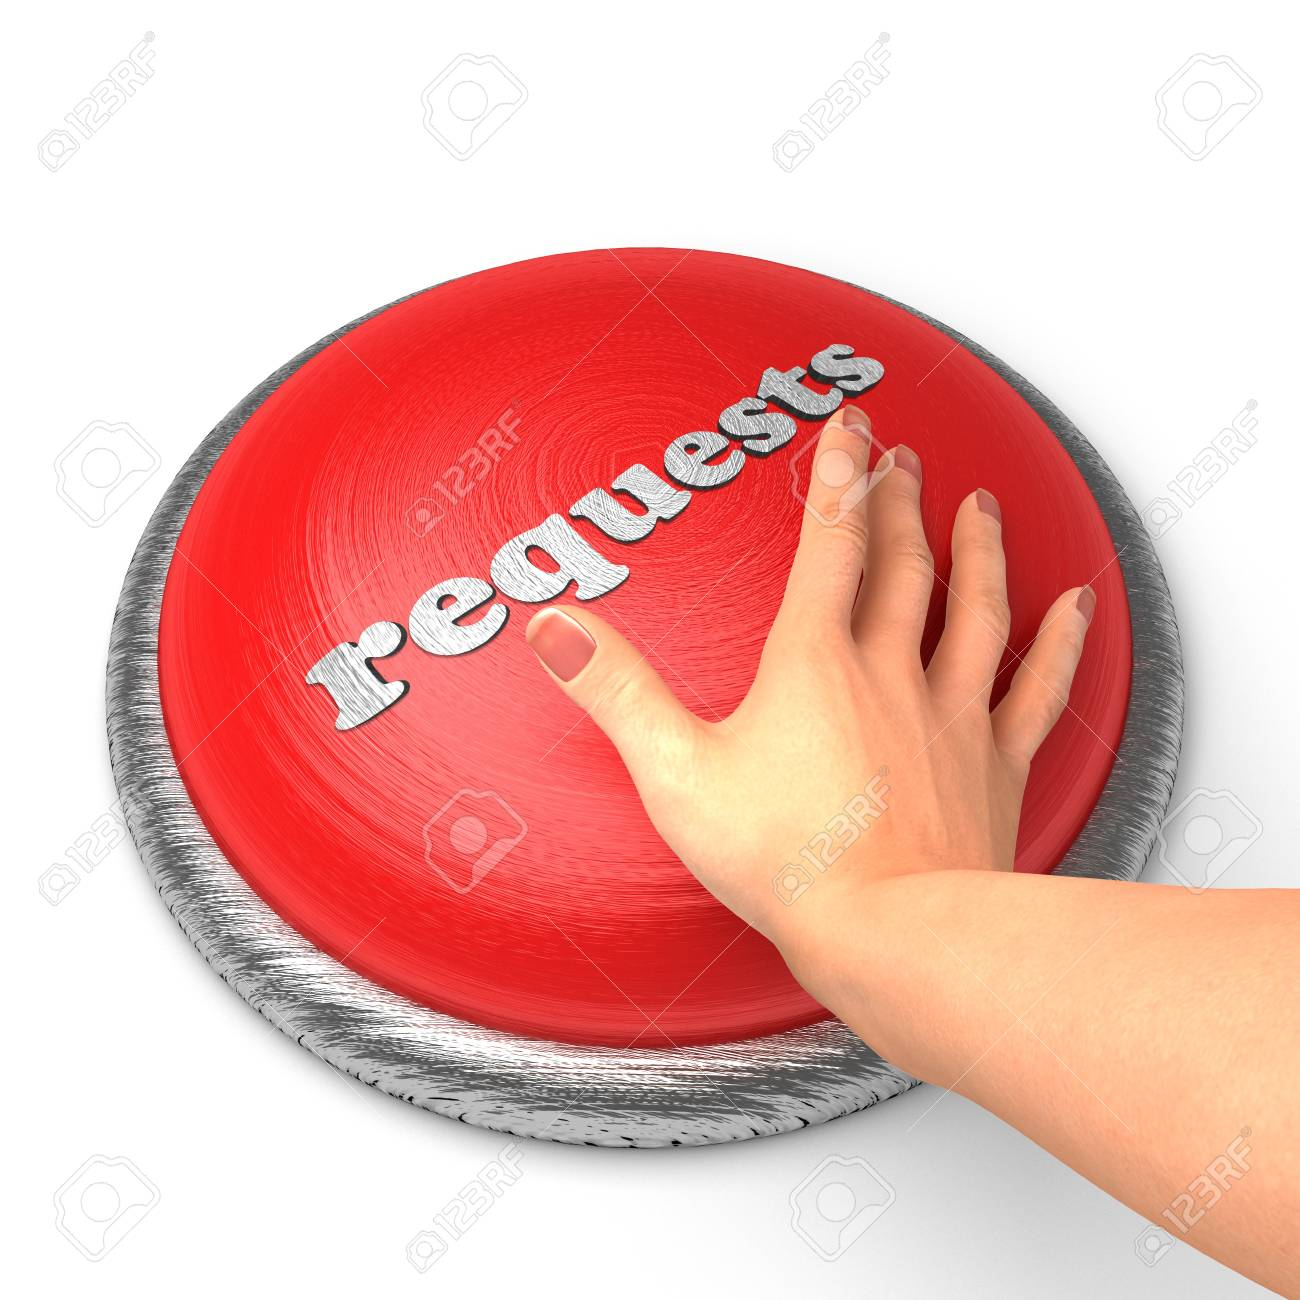 Hand pushing the button Stock Photo - 11388728